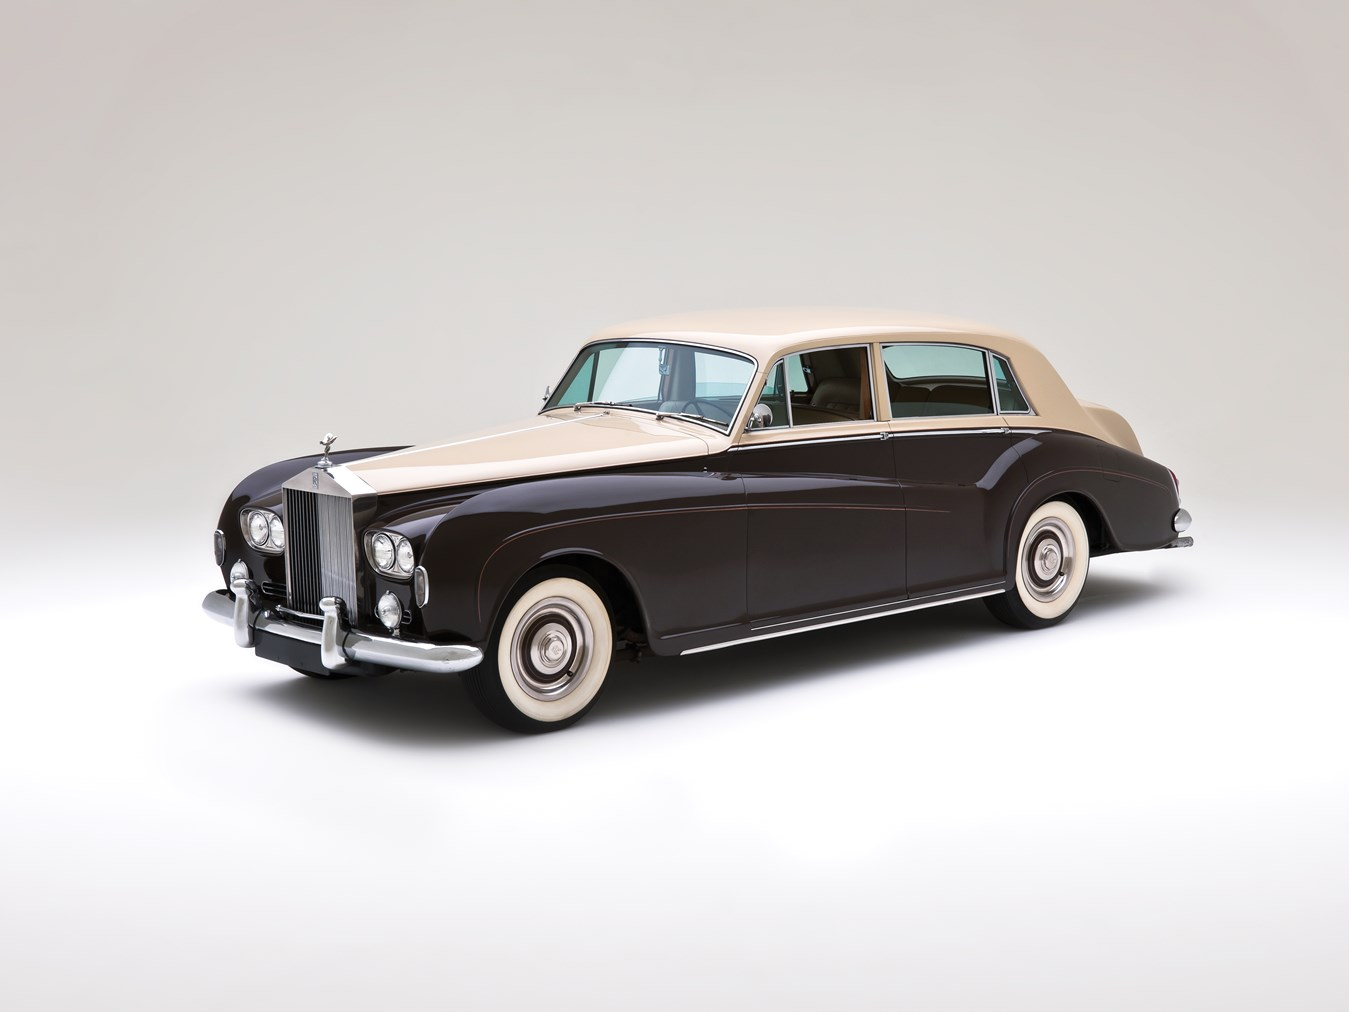 1966 Rolls-Royce Silver Cloud III Touring Limousine front 3/4